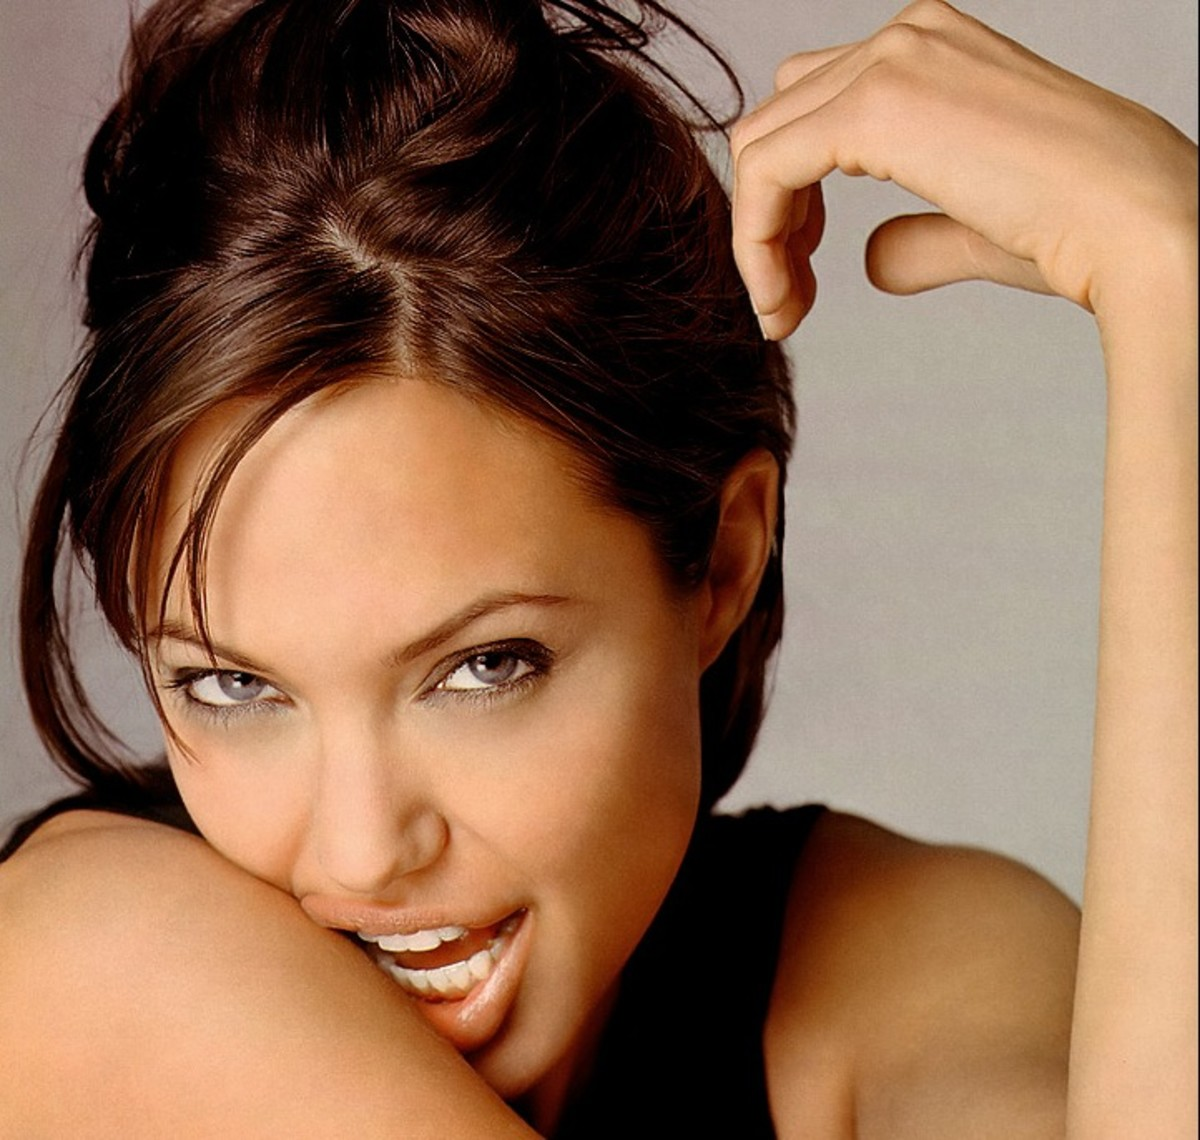 Angelina Jolie Hot or Not?